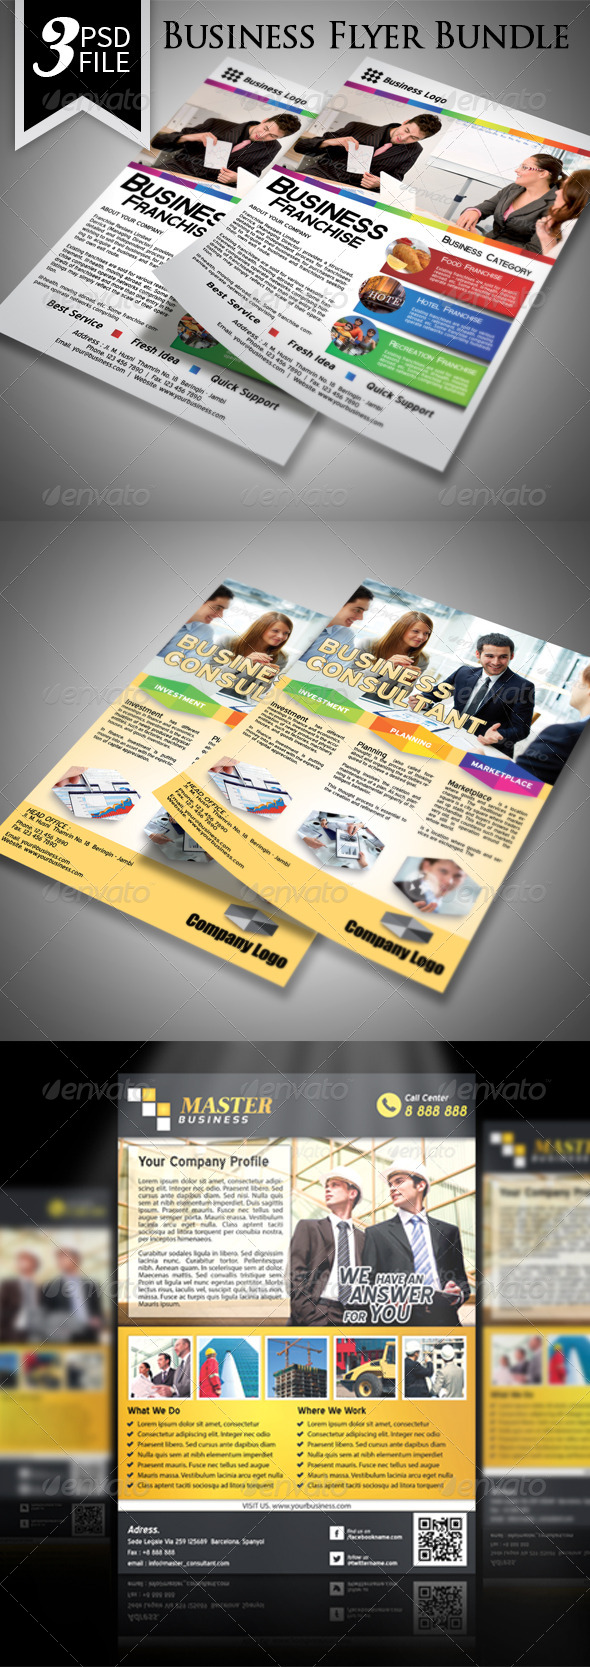 Business Flyer Bundle v1